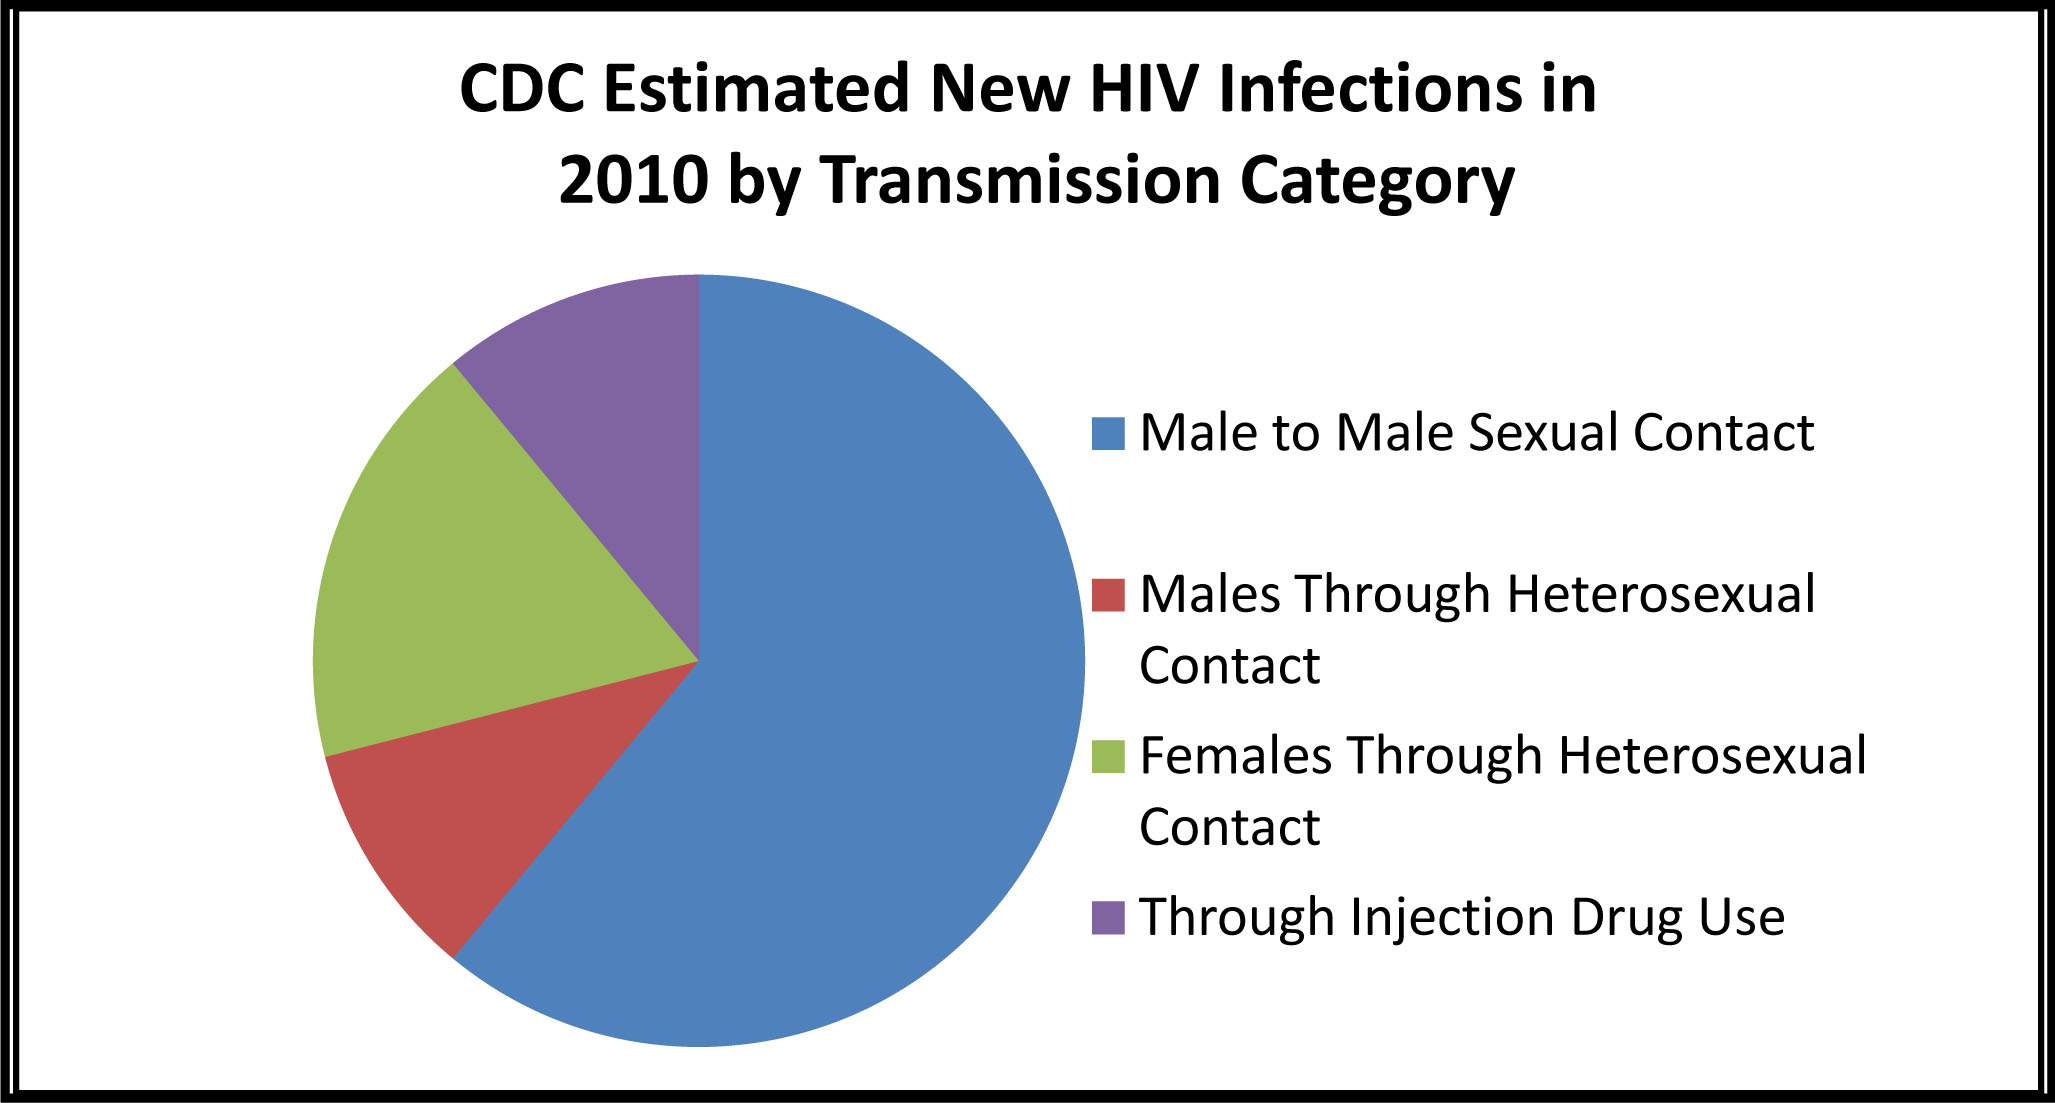 Likelihood of heterosexual hiv transmission risk